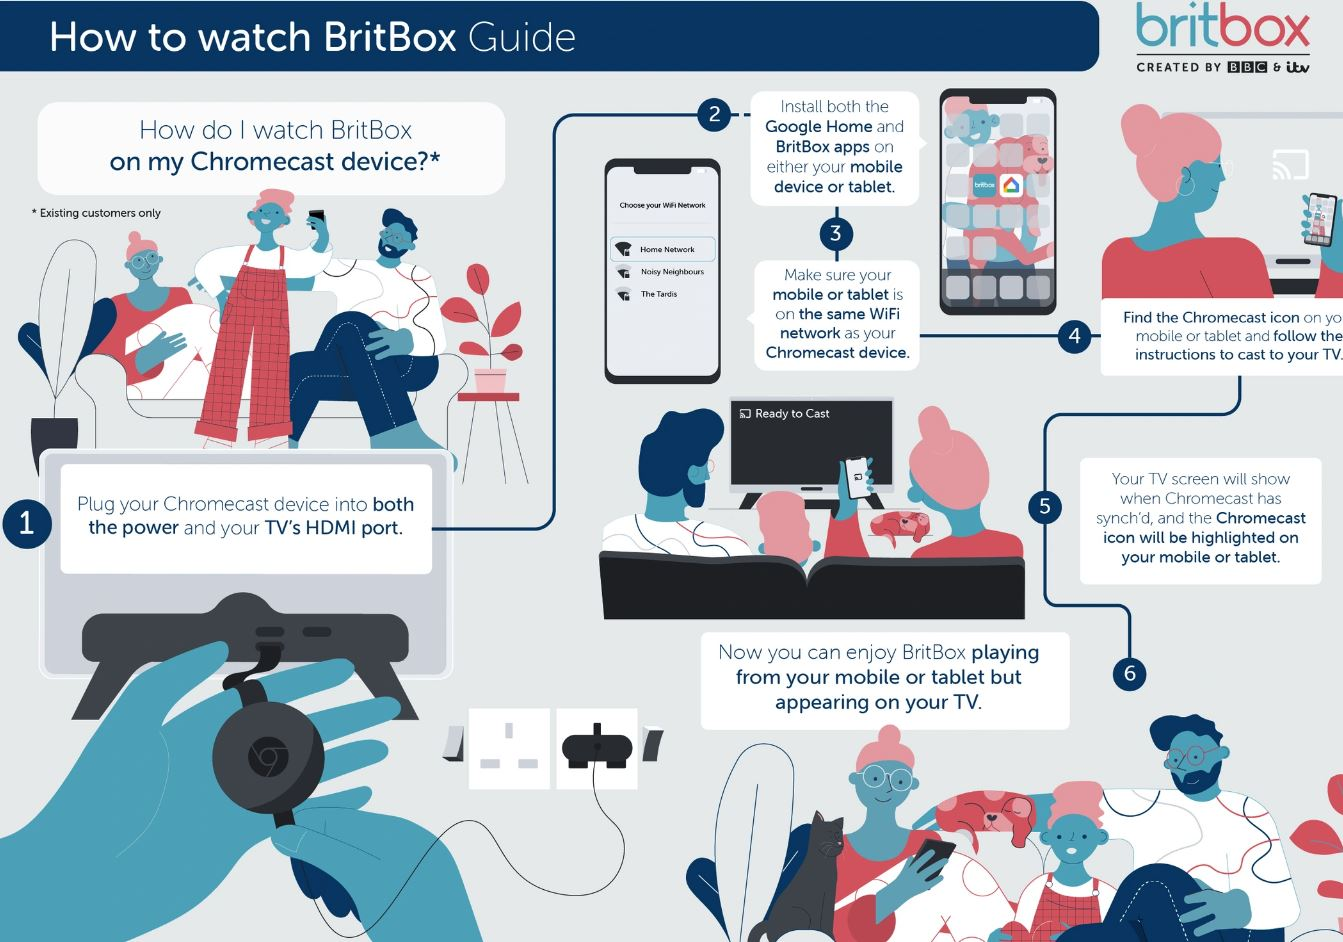 How to watch bribox in South Africa